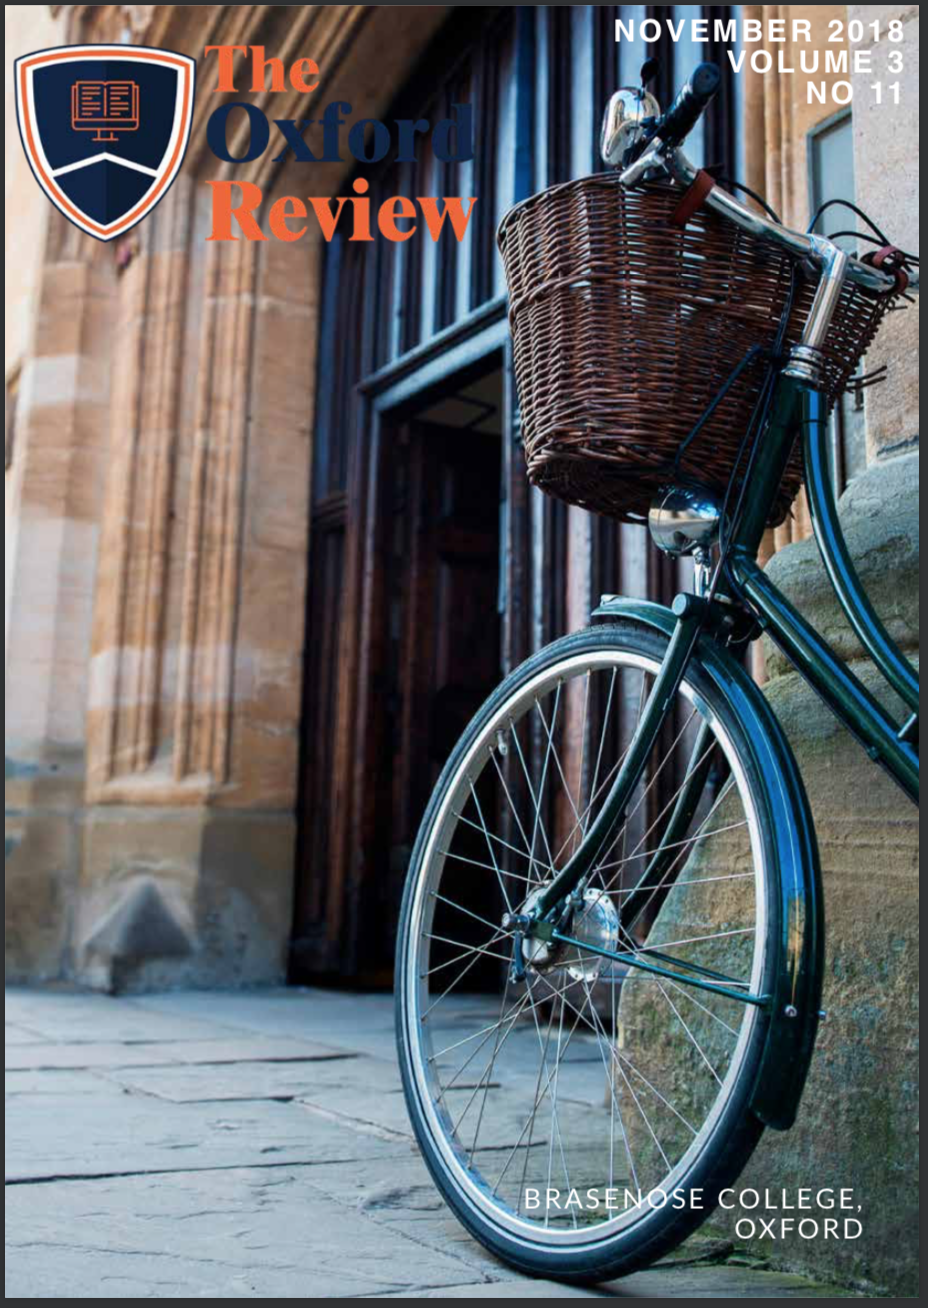 The Oxford Review Vol 3 No 11